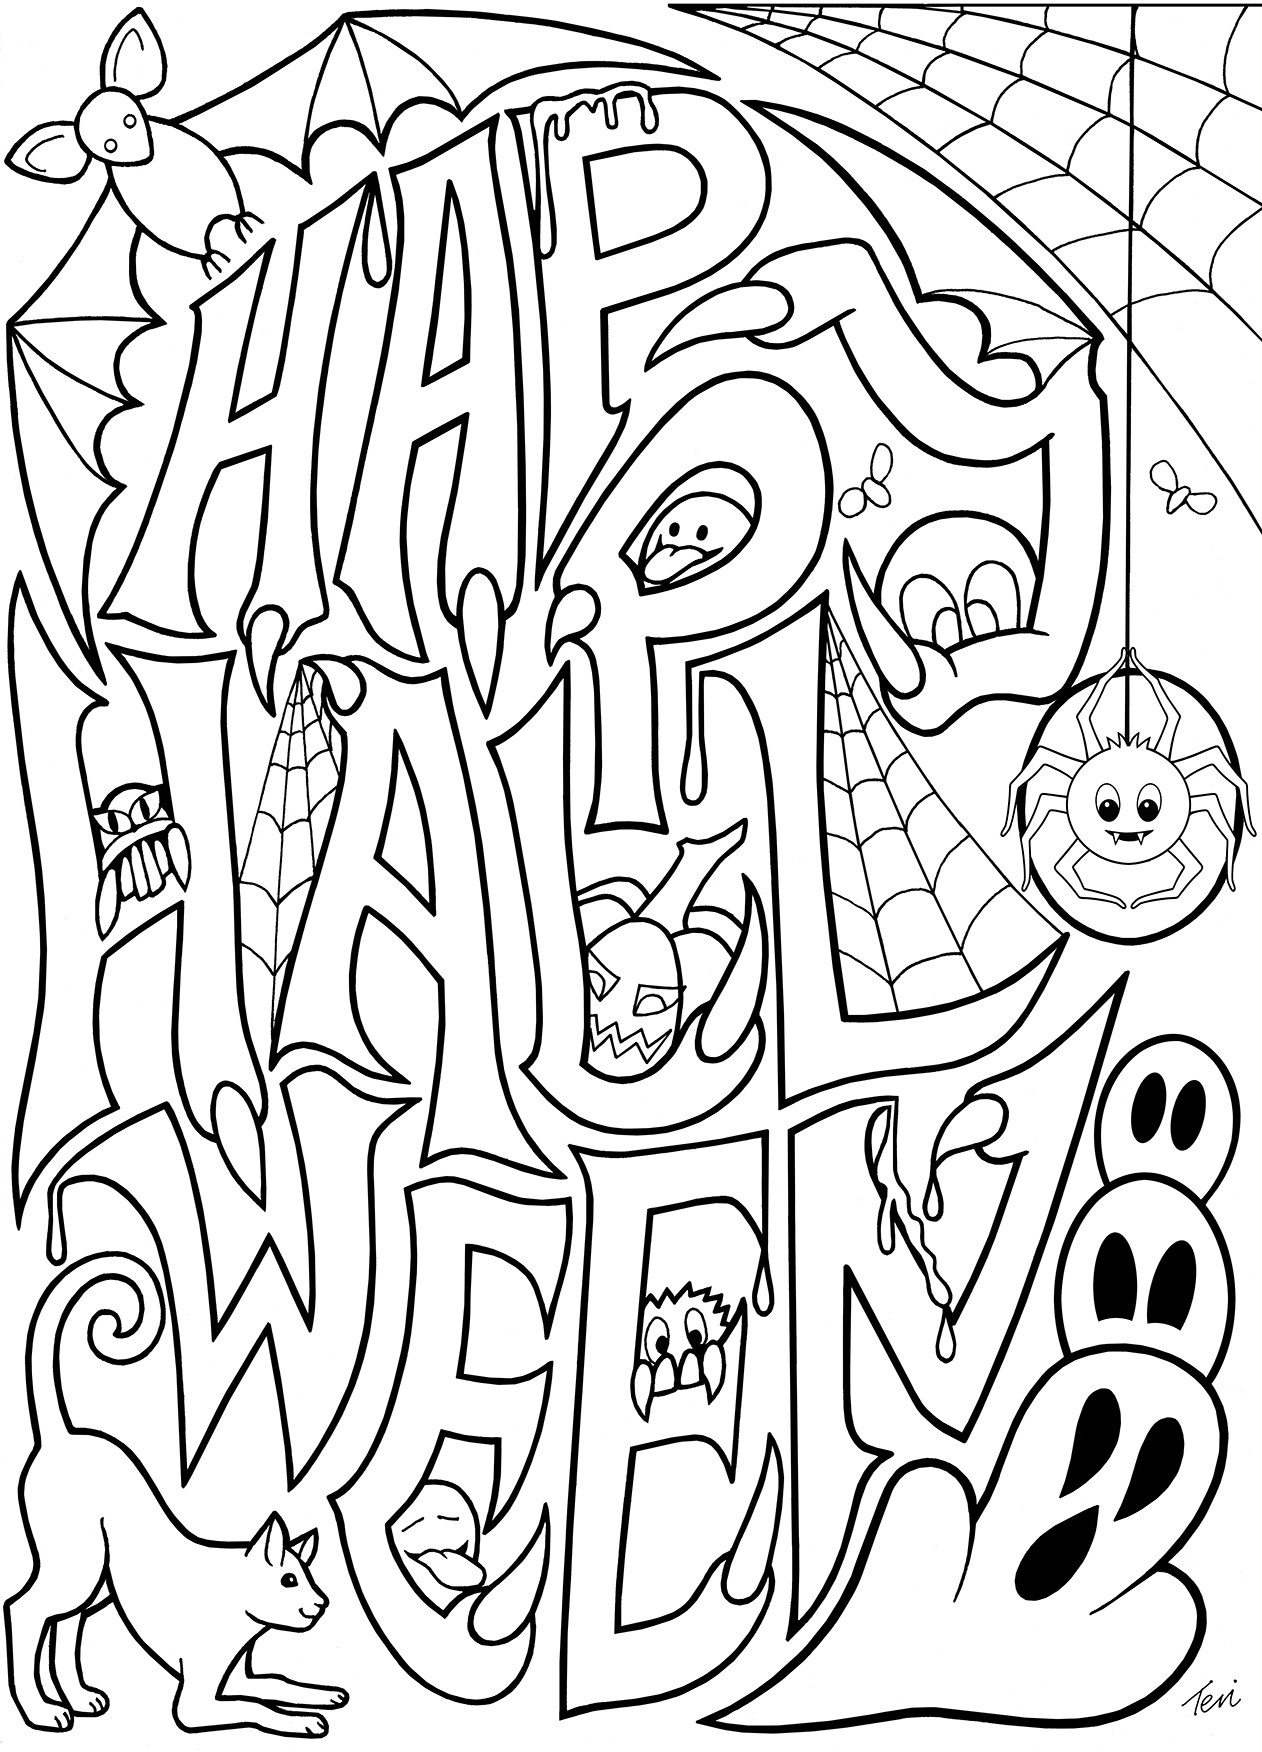 Free Printable Halloween Coloring Page Coloring Pages Coloring Pages Free Printable Halloween Page